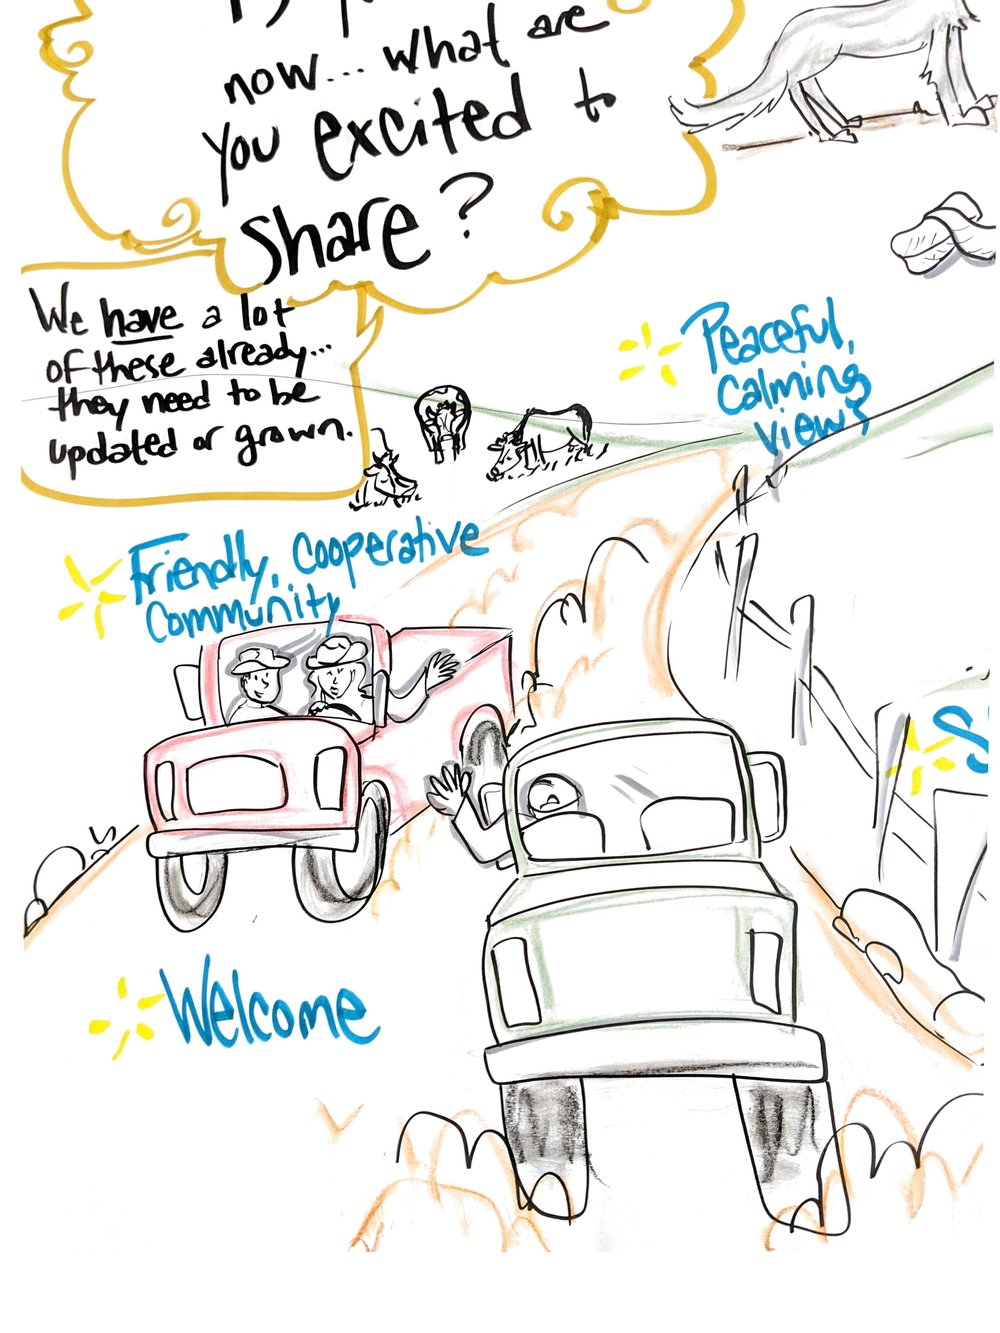 custer-county-vision-conversketch-graphic-recording-friendly-wave